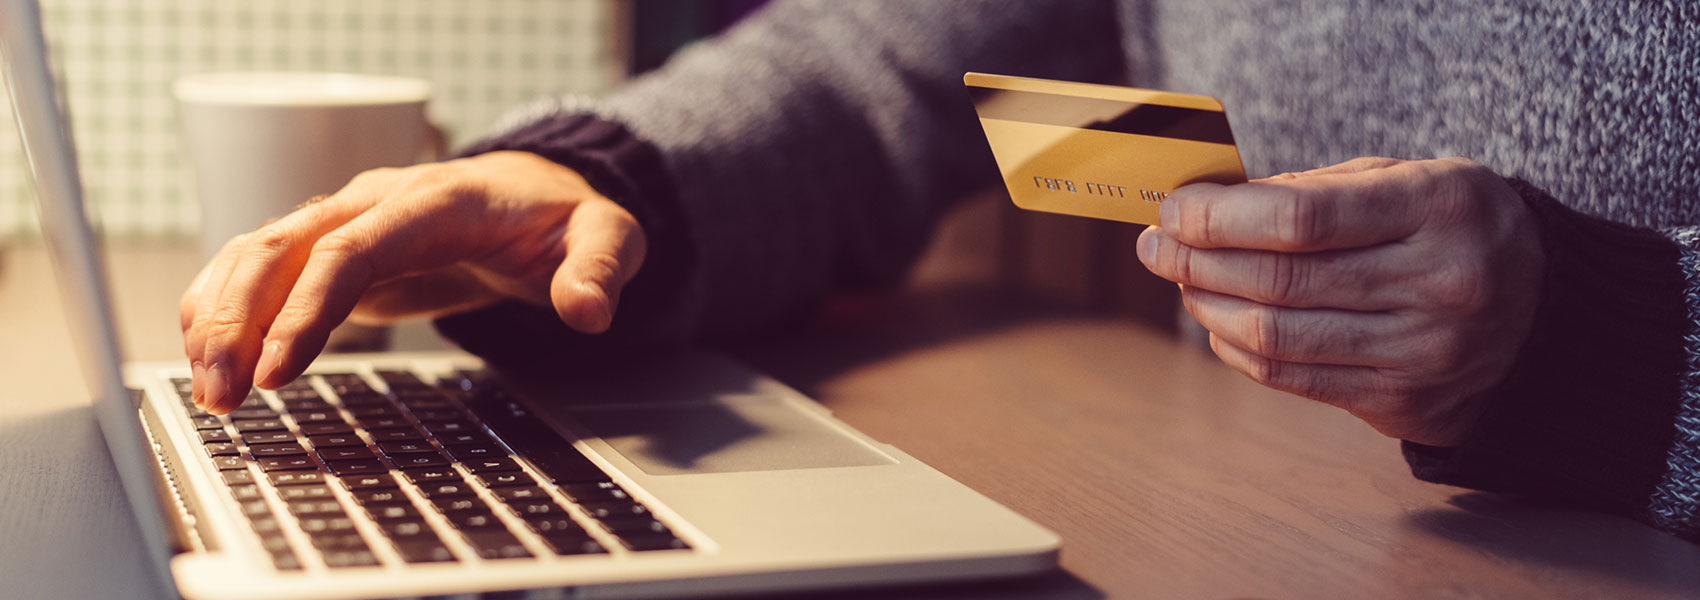 A person holding a credit card at a computer